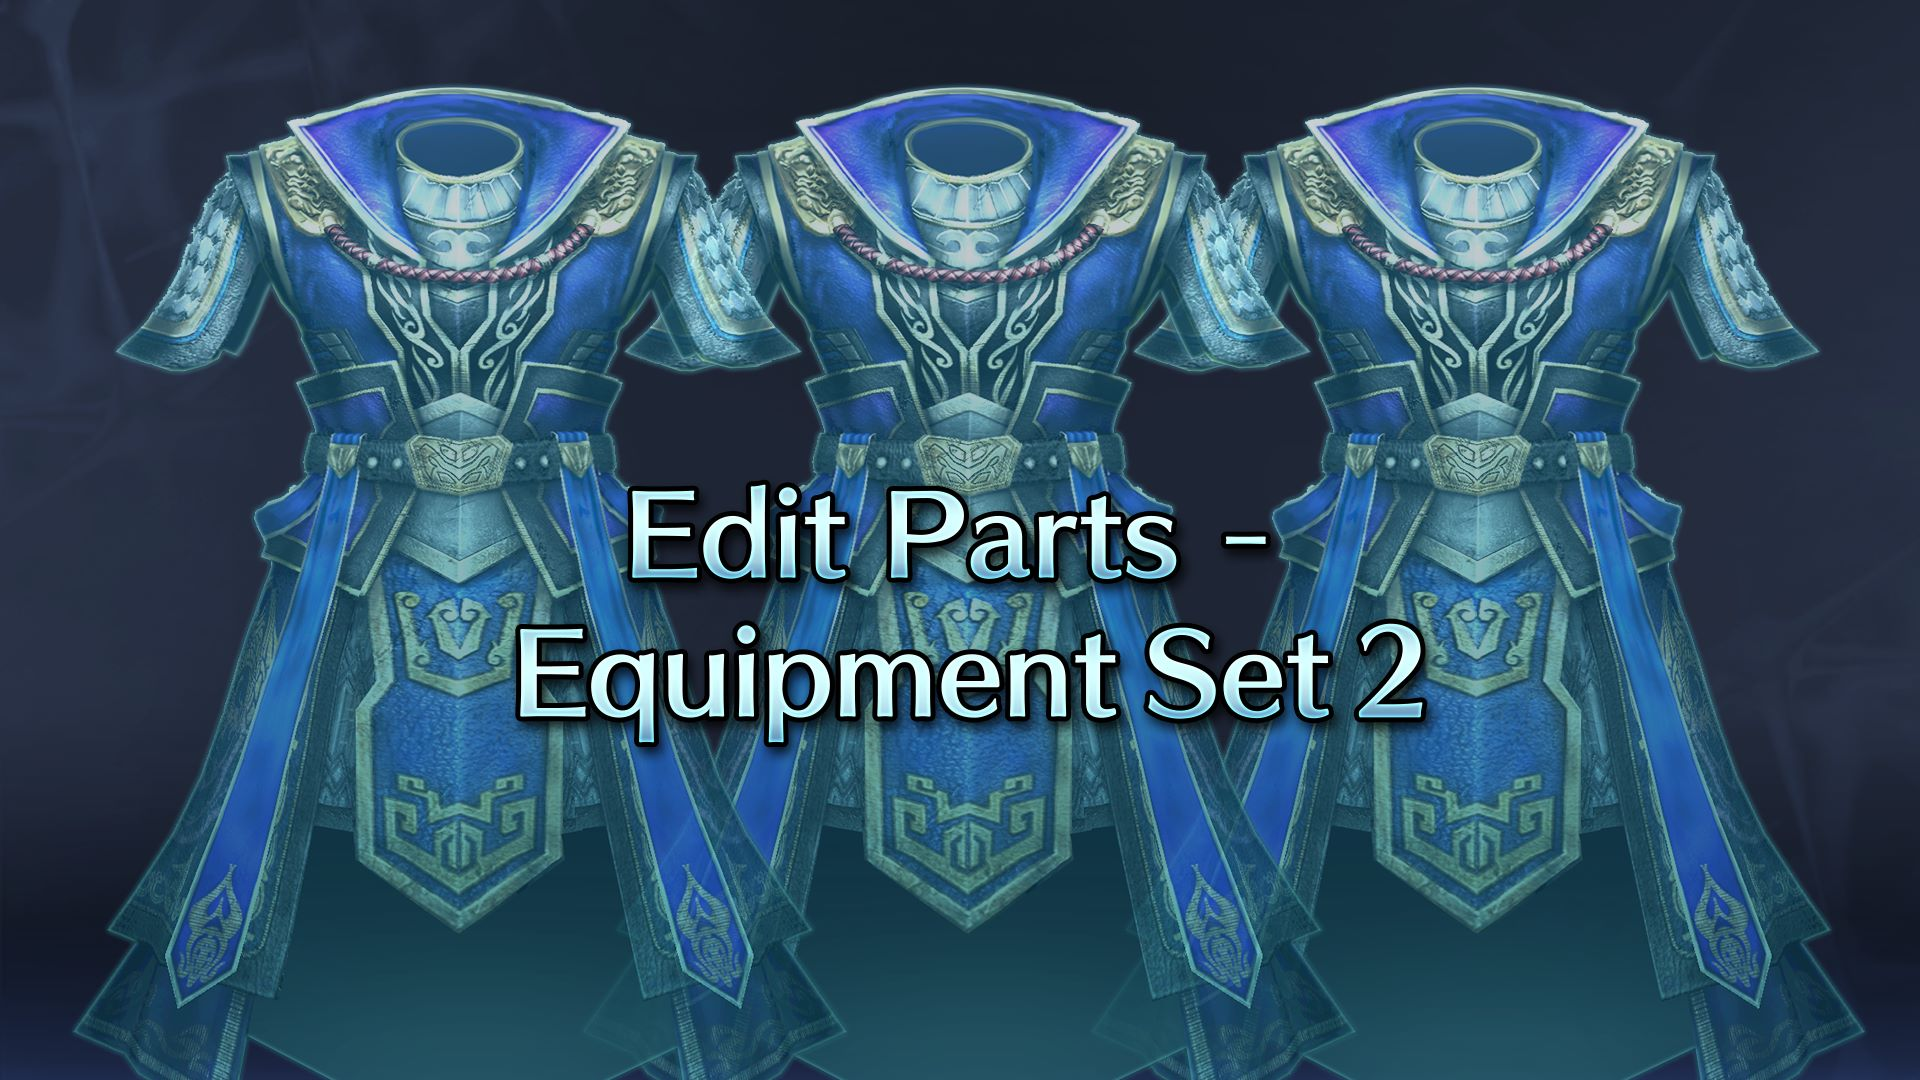 Edit Parts - Equipment Set 2